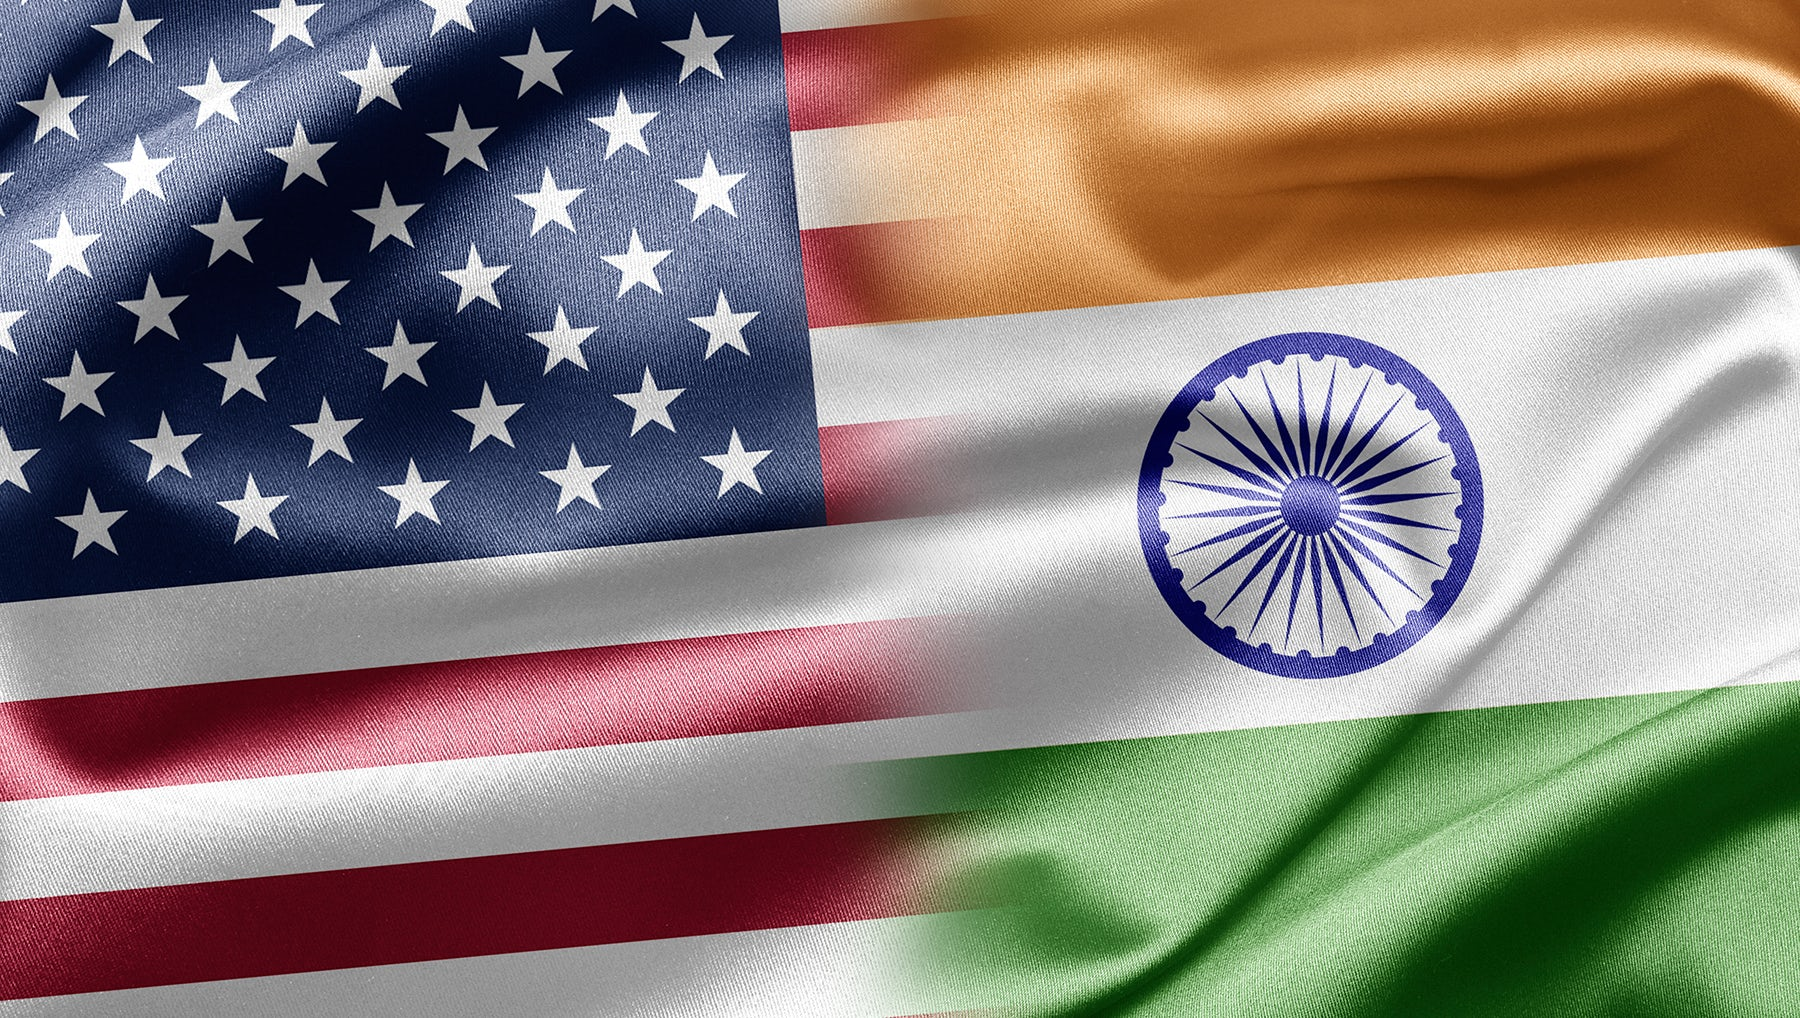 US Tells India to Cut Tariffs as Trade Friction Heats Up